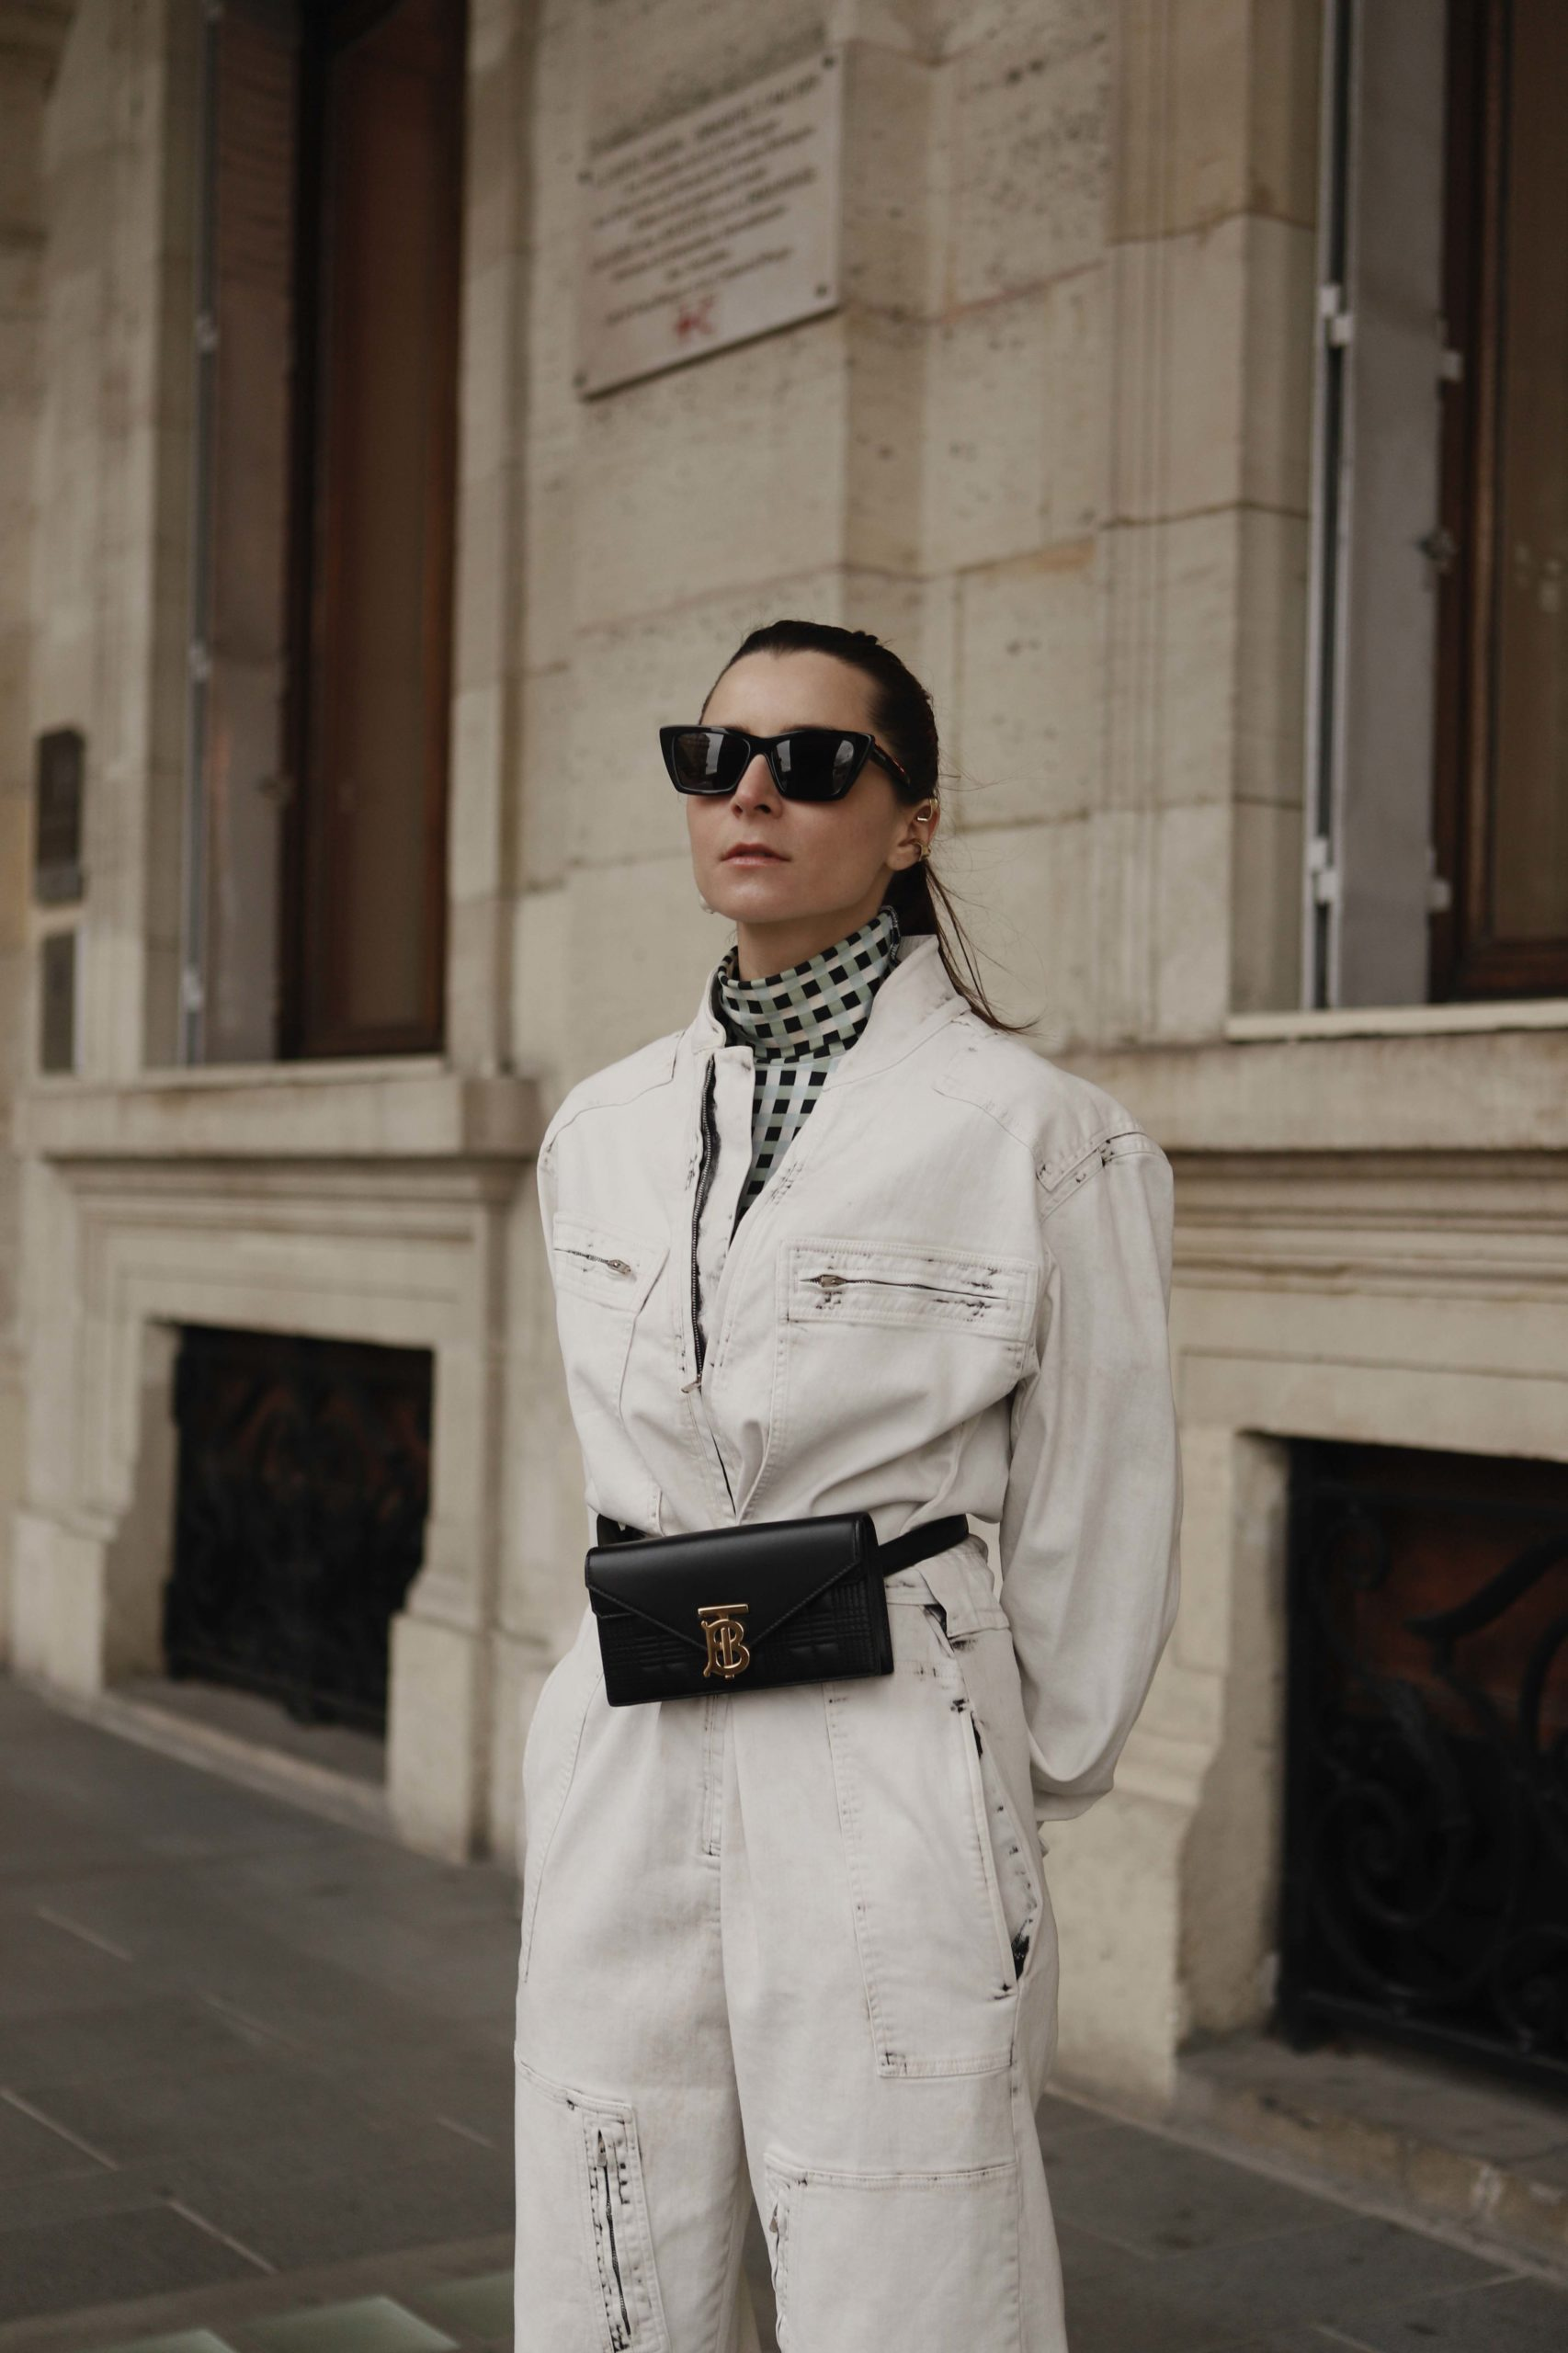 utility jumpsuit caramel trench paris fashion week street style 2020 AW march 2020 julia comil stella mc cartney burberry proenza schouler